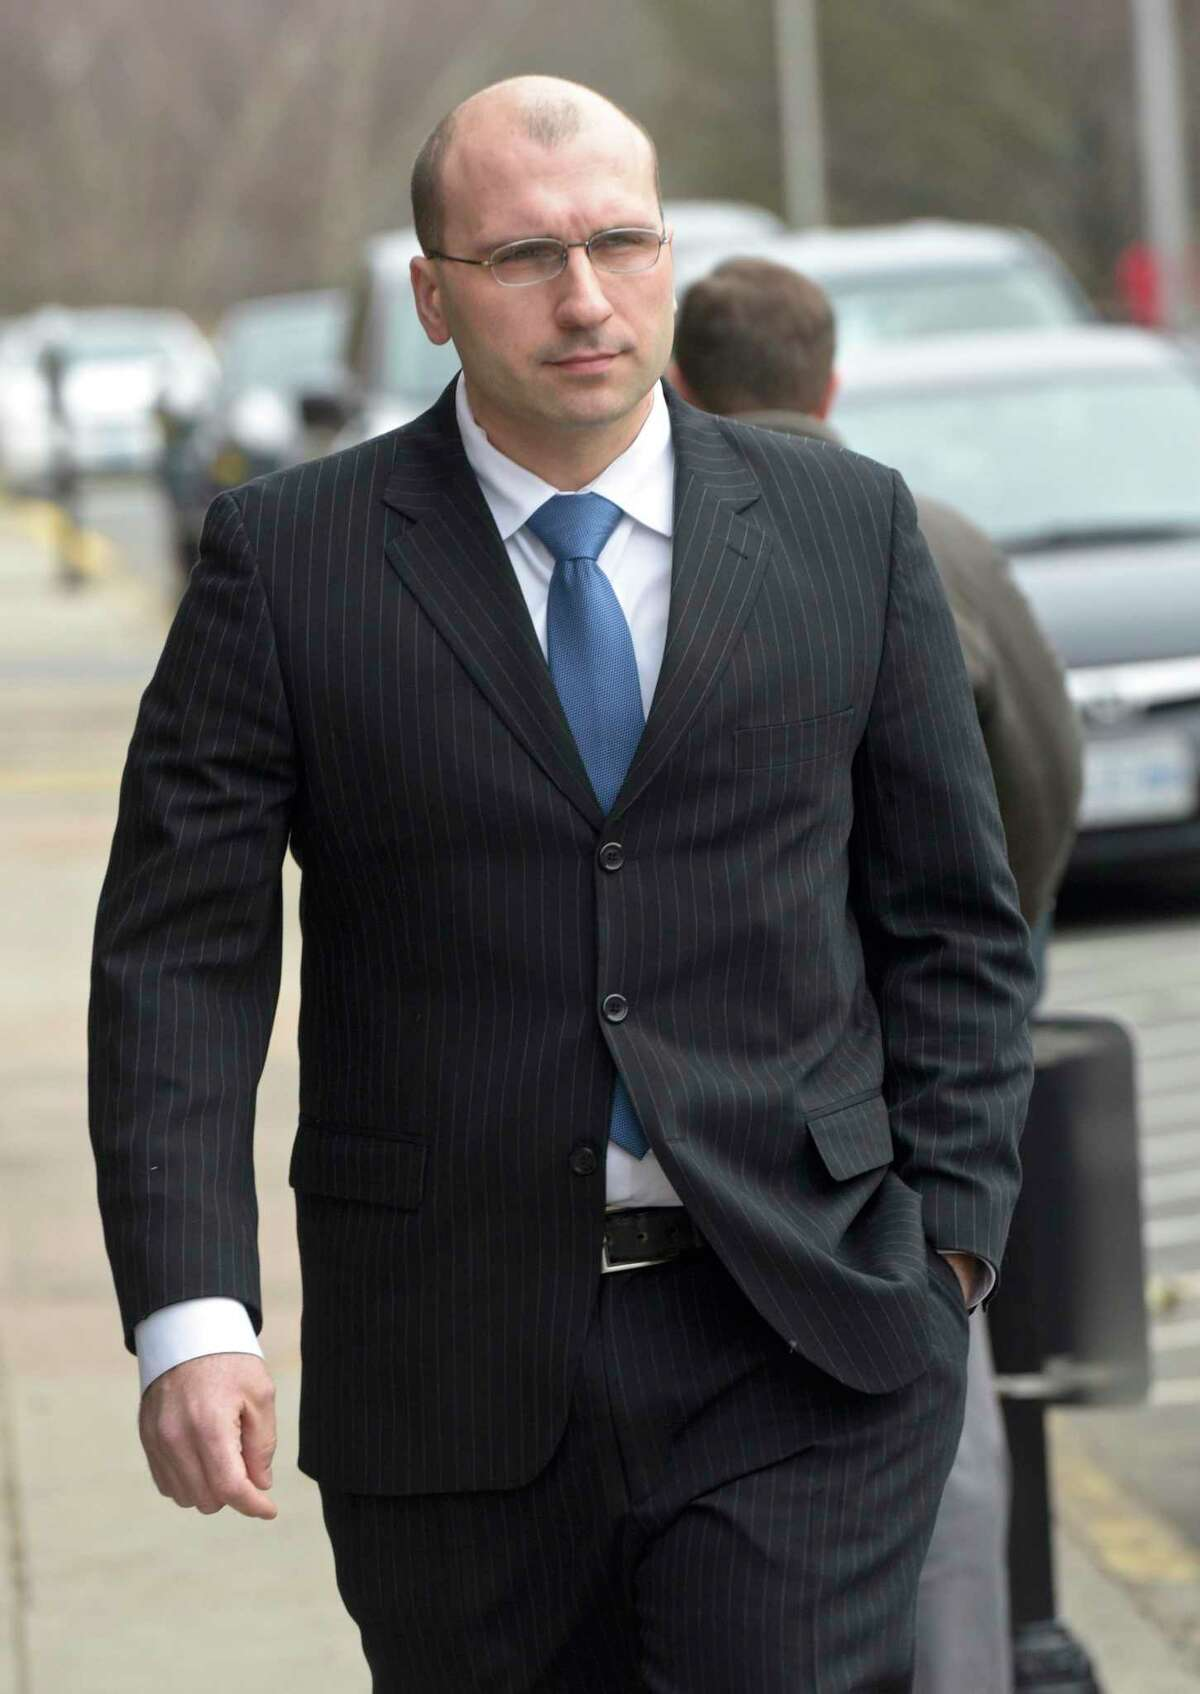 Connecticut State Trooper Sgt. John McDonald leaves Superior Court in Middletown on Monday morning, January 27, 2020, in Middletown, Conn.